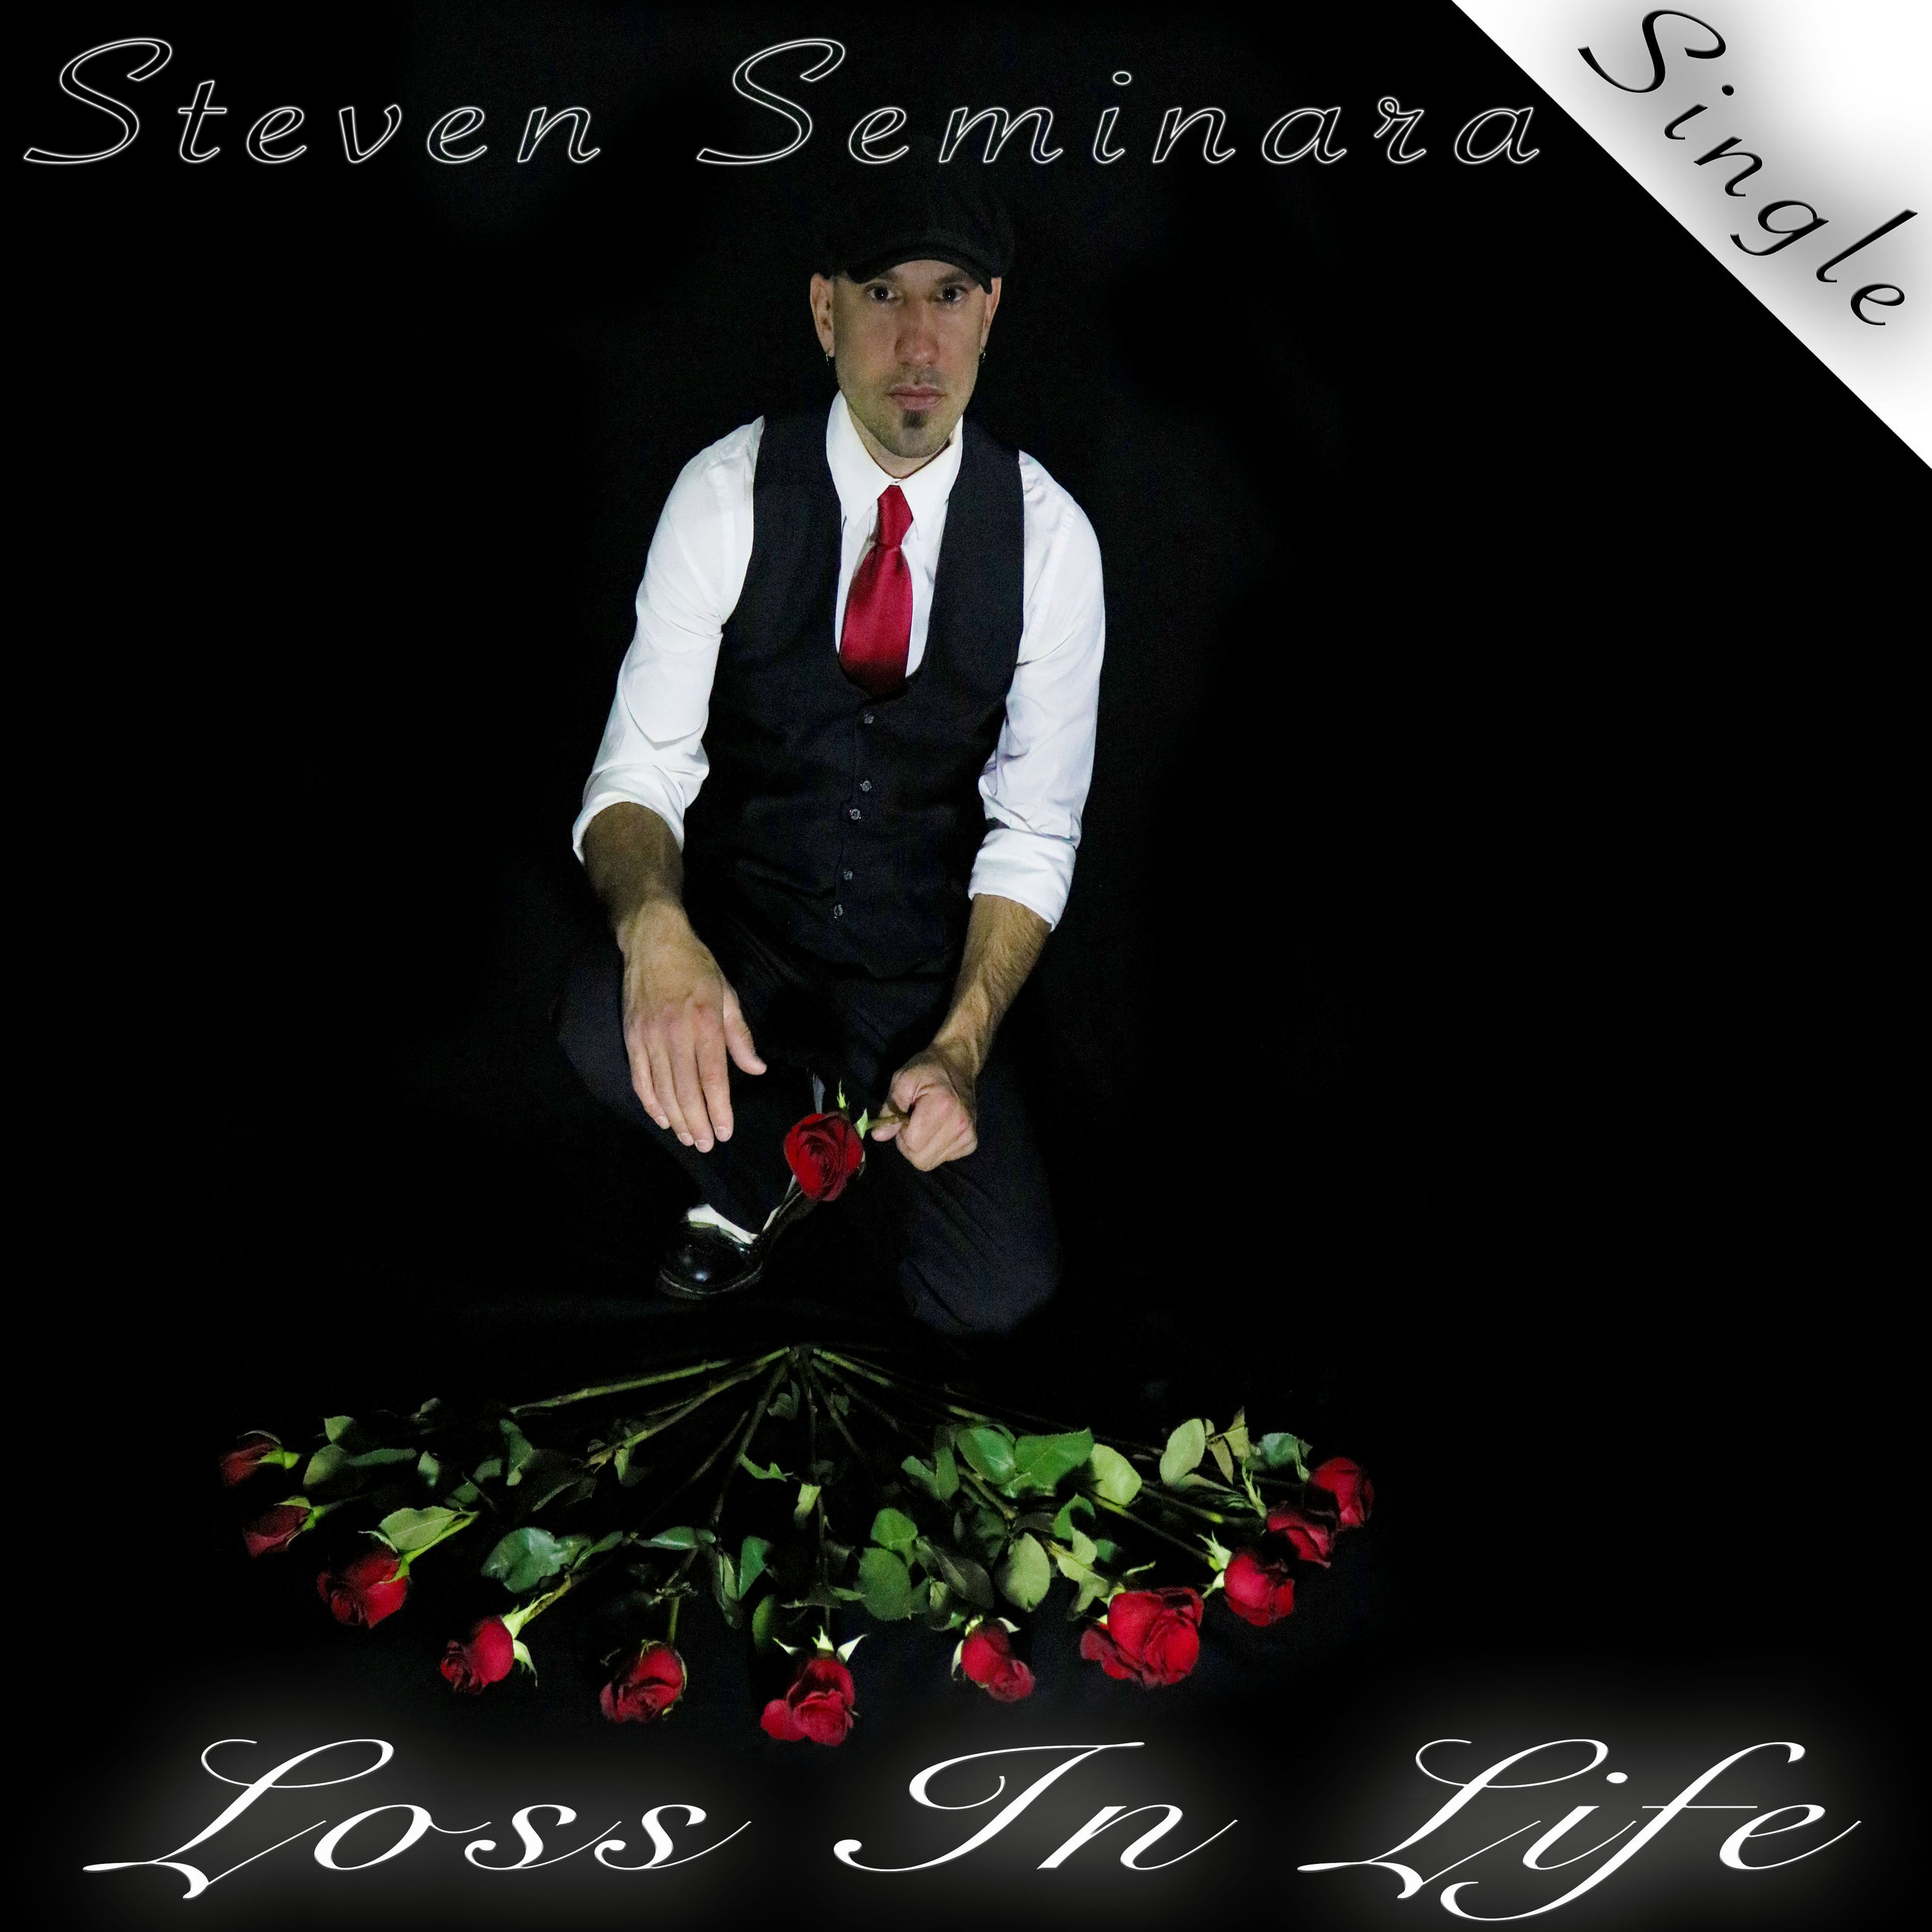 Loss In Life - (Single)Click picture for purchase!